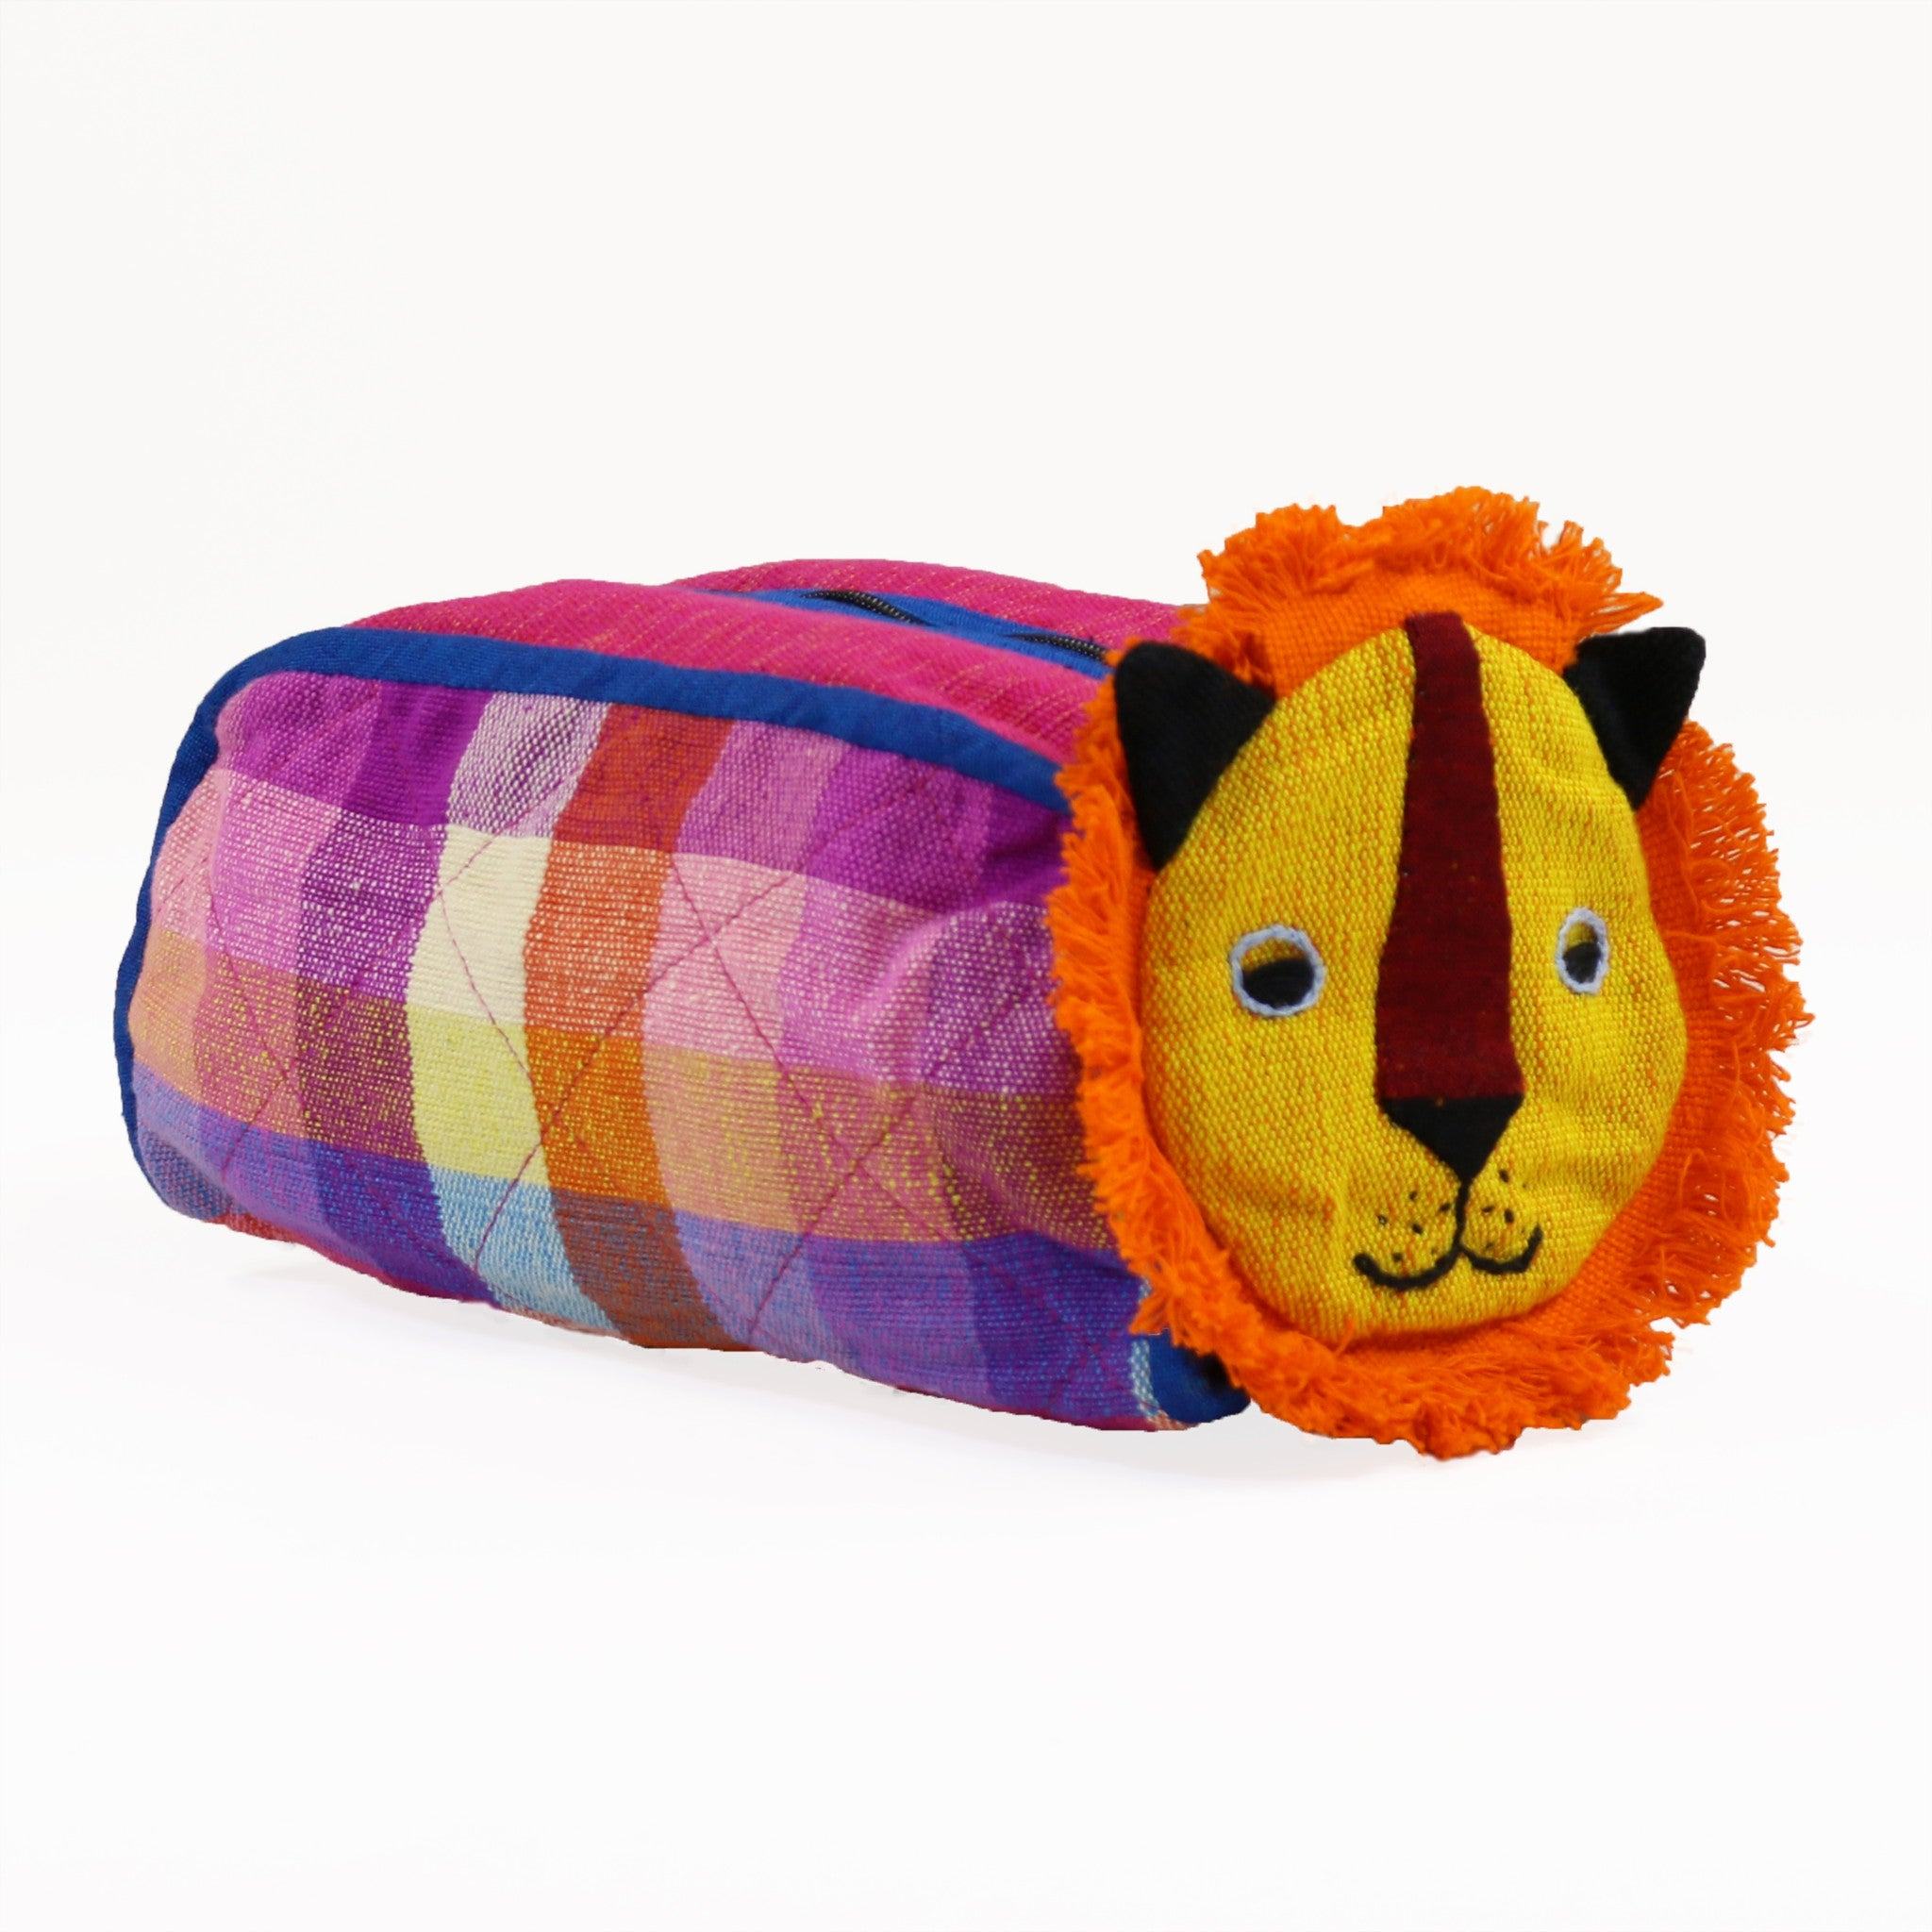 Lion Zip Pouch - Sugarplum fabric